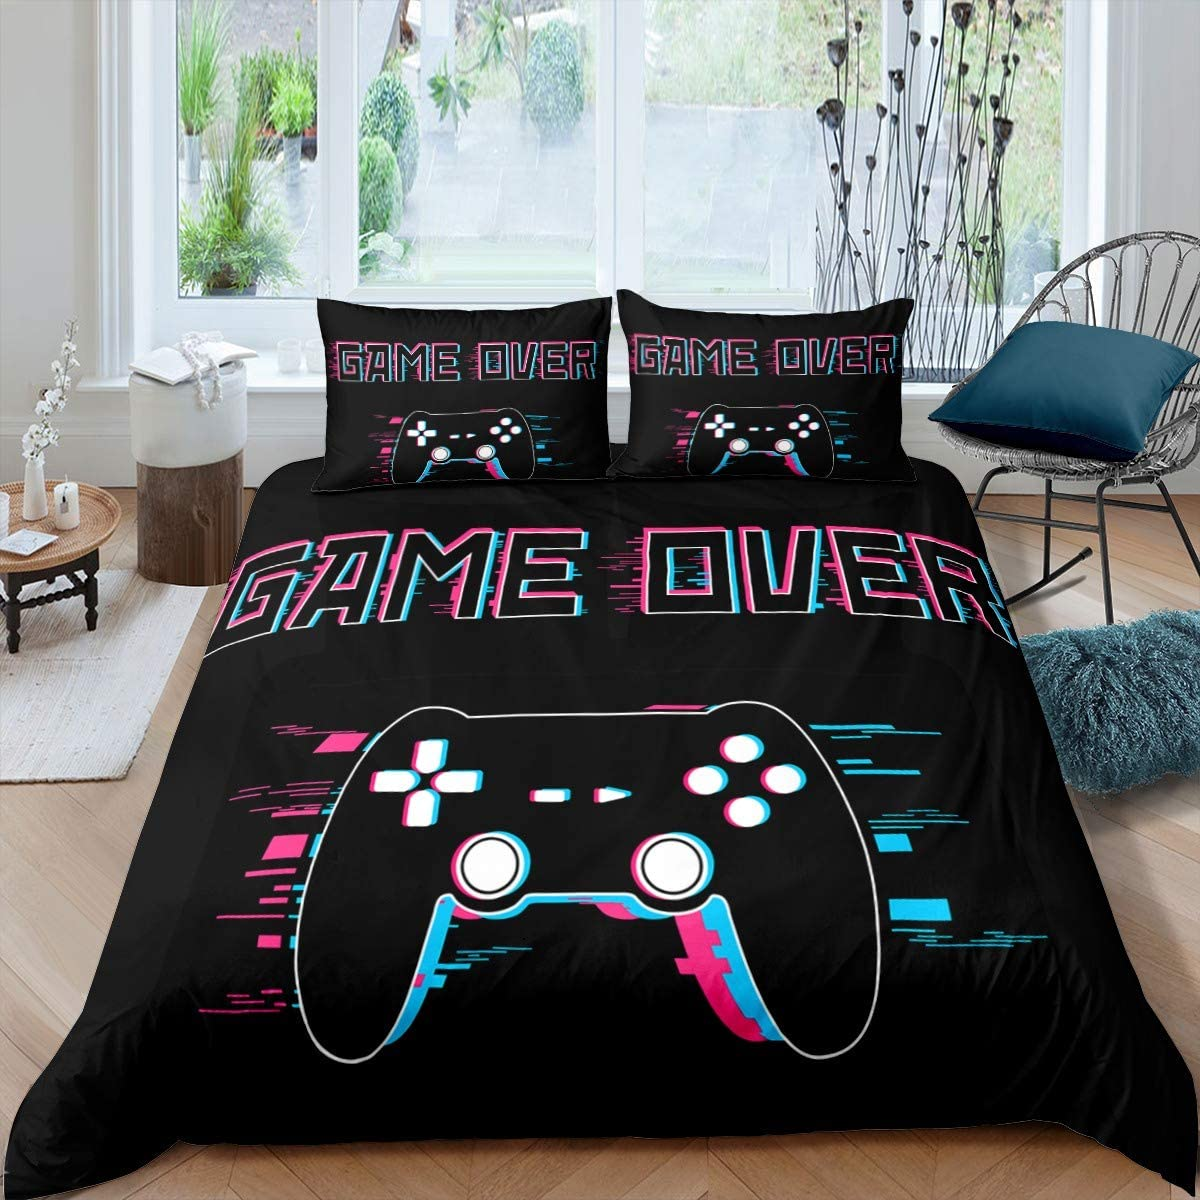 Gamepad Print Duvet Cover Set for Kids Boys Girls Teens Gamer Video Game Comforter Cover Youth Modern Fashion Game Controller Decor Bedding Set Hypoallergenic Microfiber Queen Size Black 2 Pcs